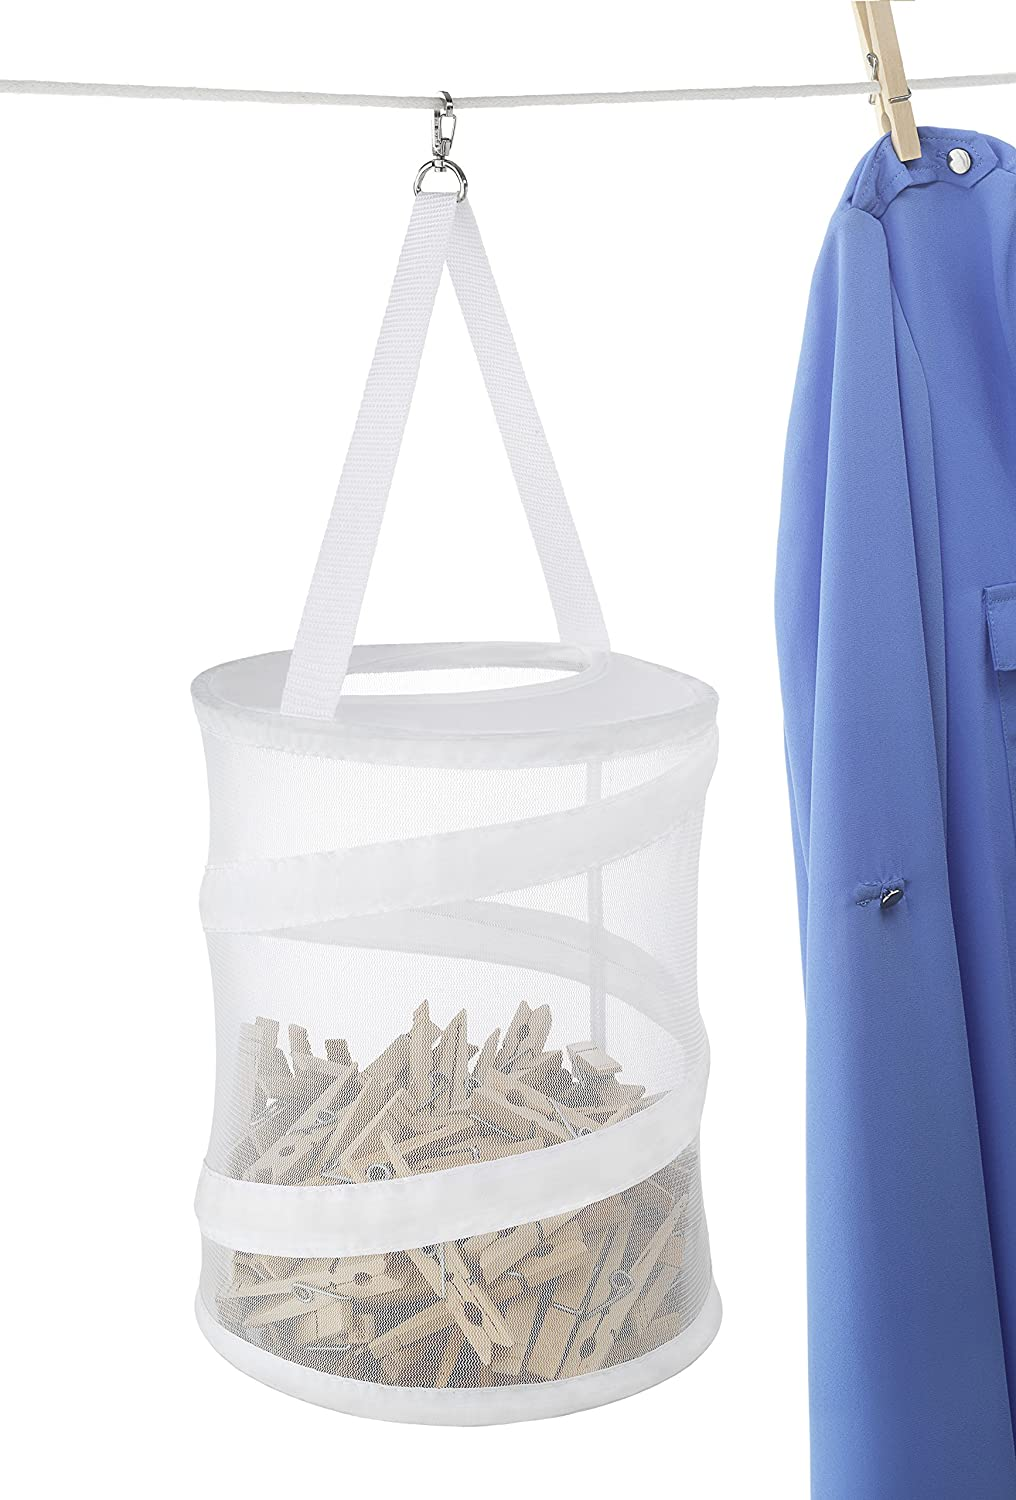 Whitmor Pop and Fold Clothespin Bag White